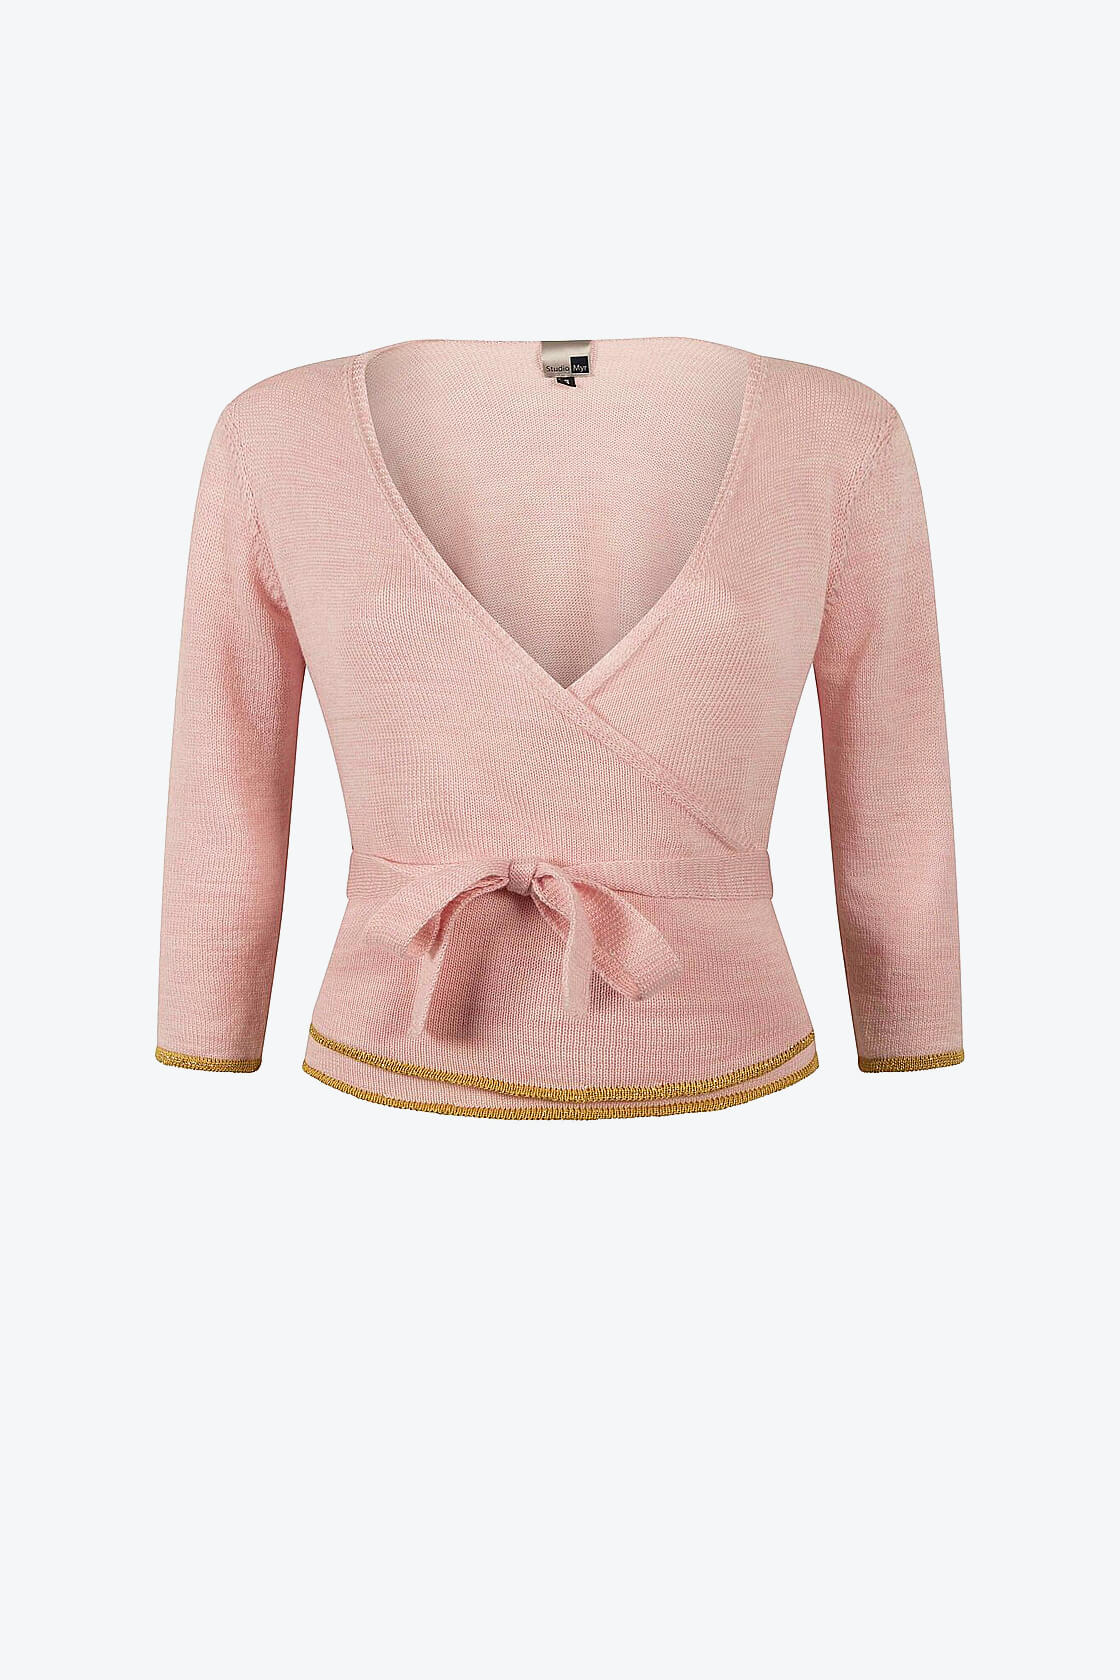 Blossom Pink Wrap Top Sweety